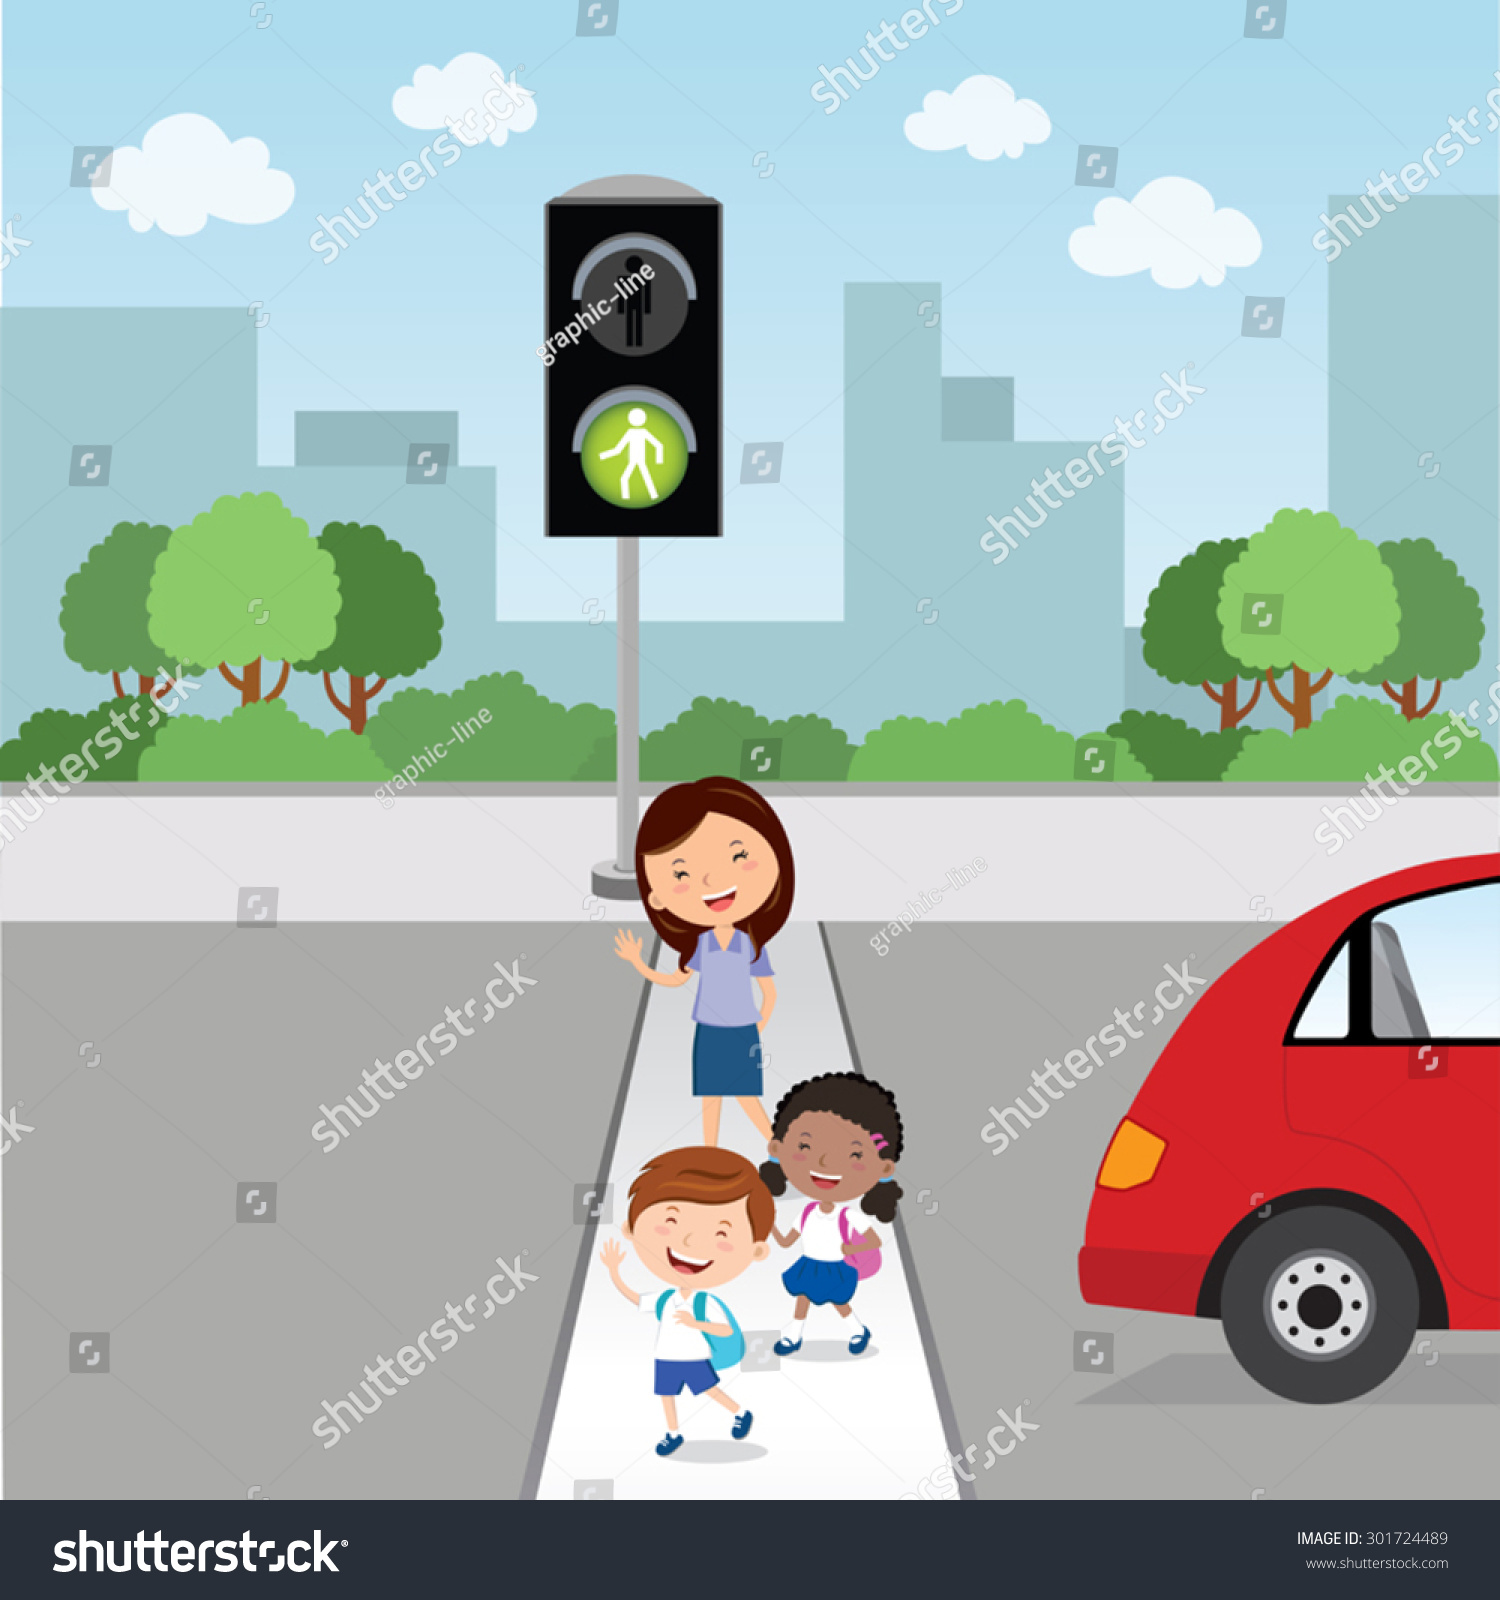 Road Crossing Clipart Crossing The Road Green Light Teacher And School Kids